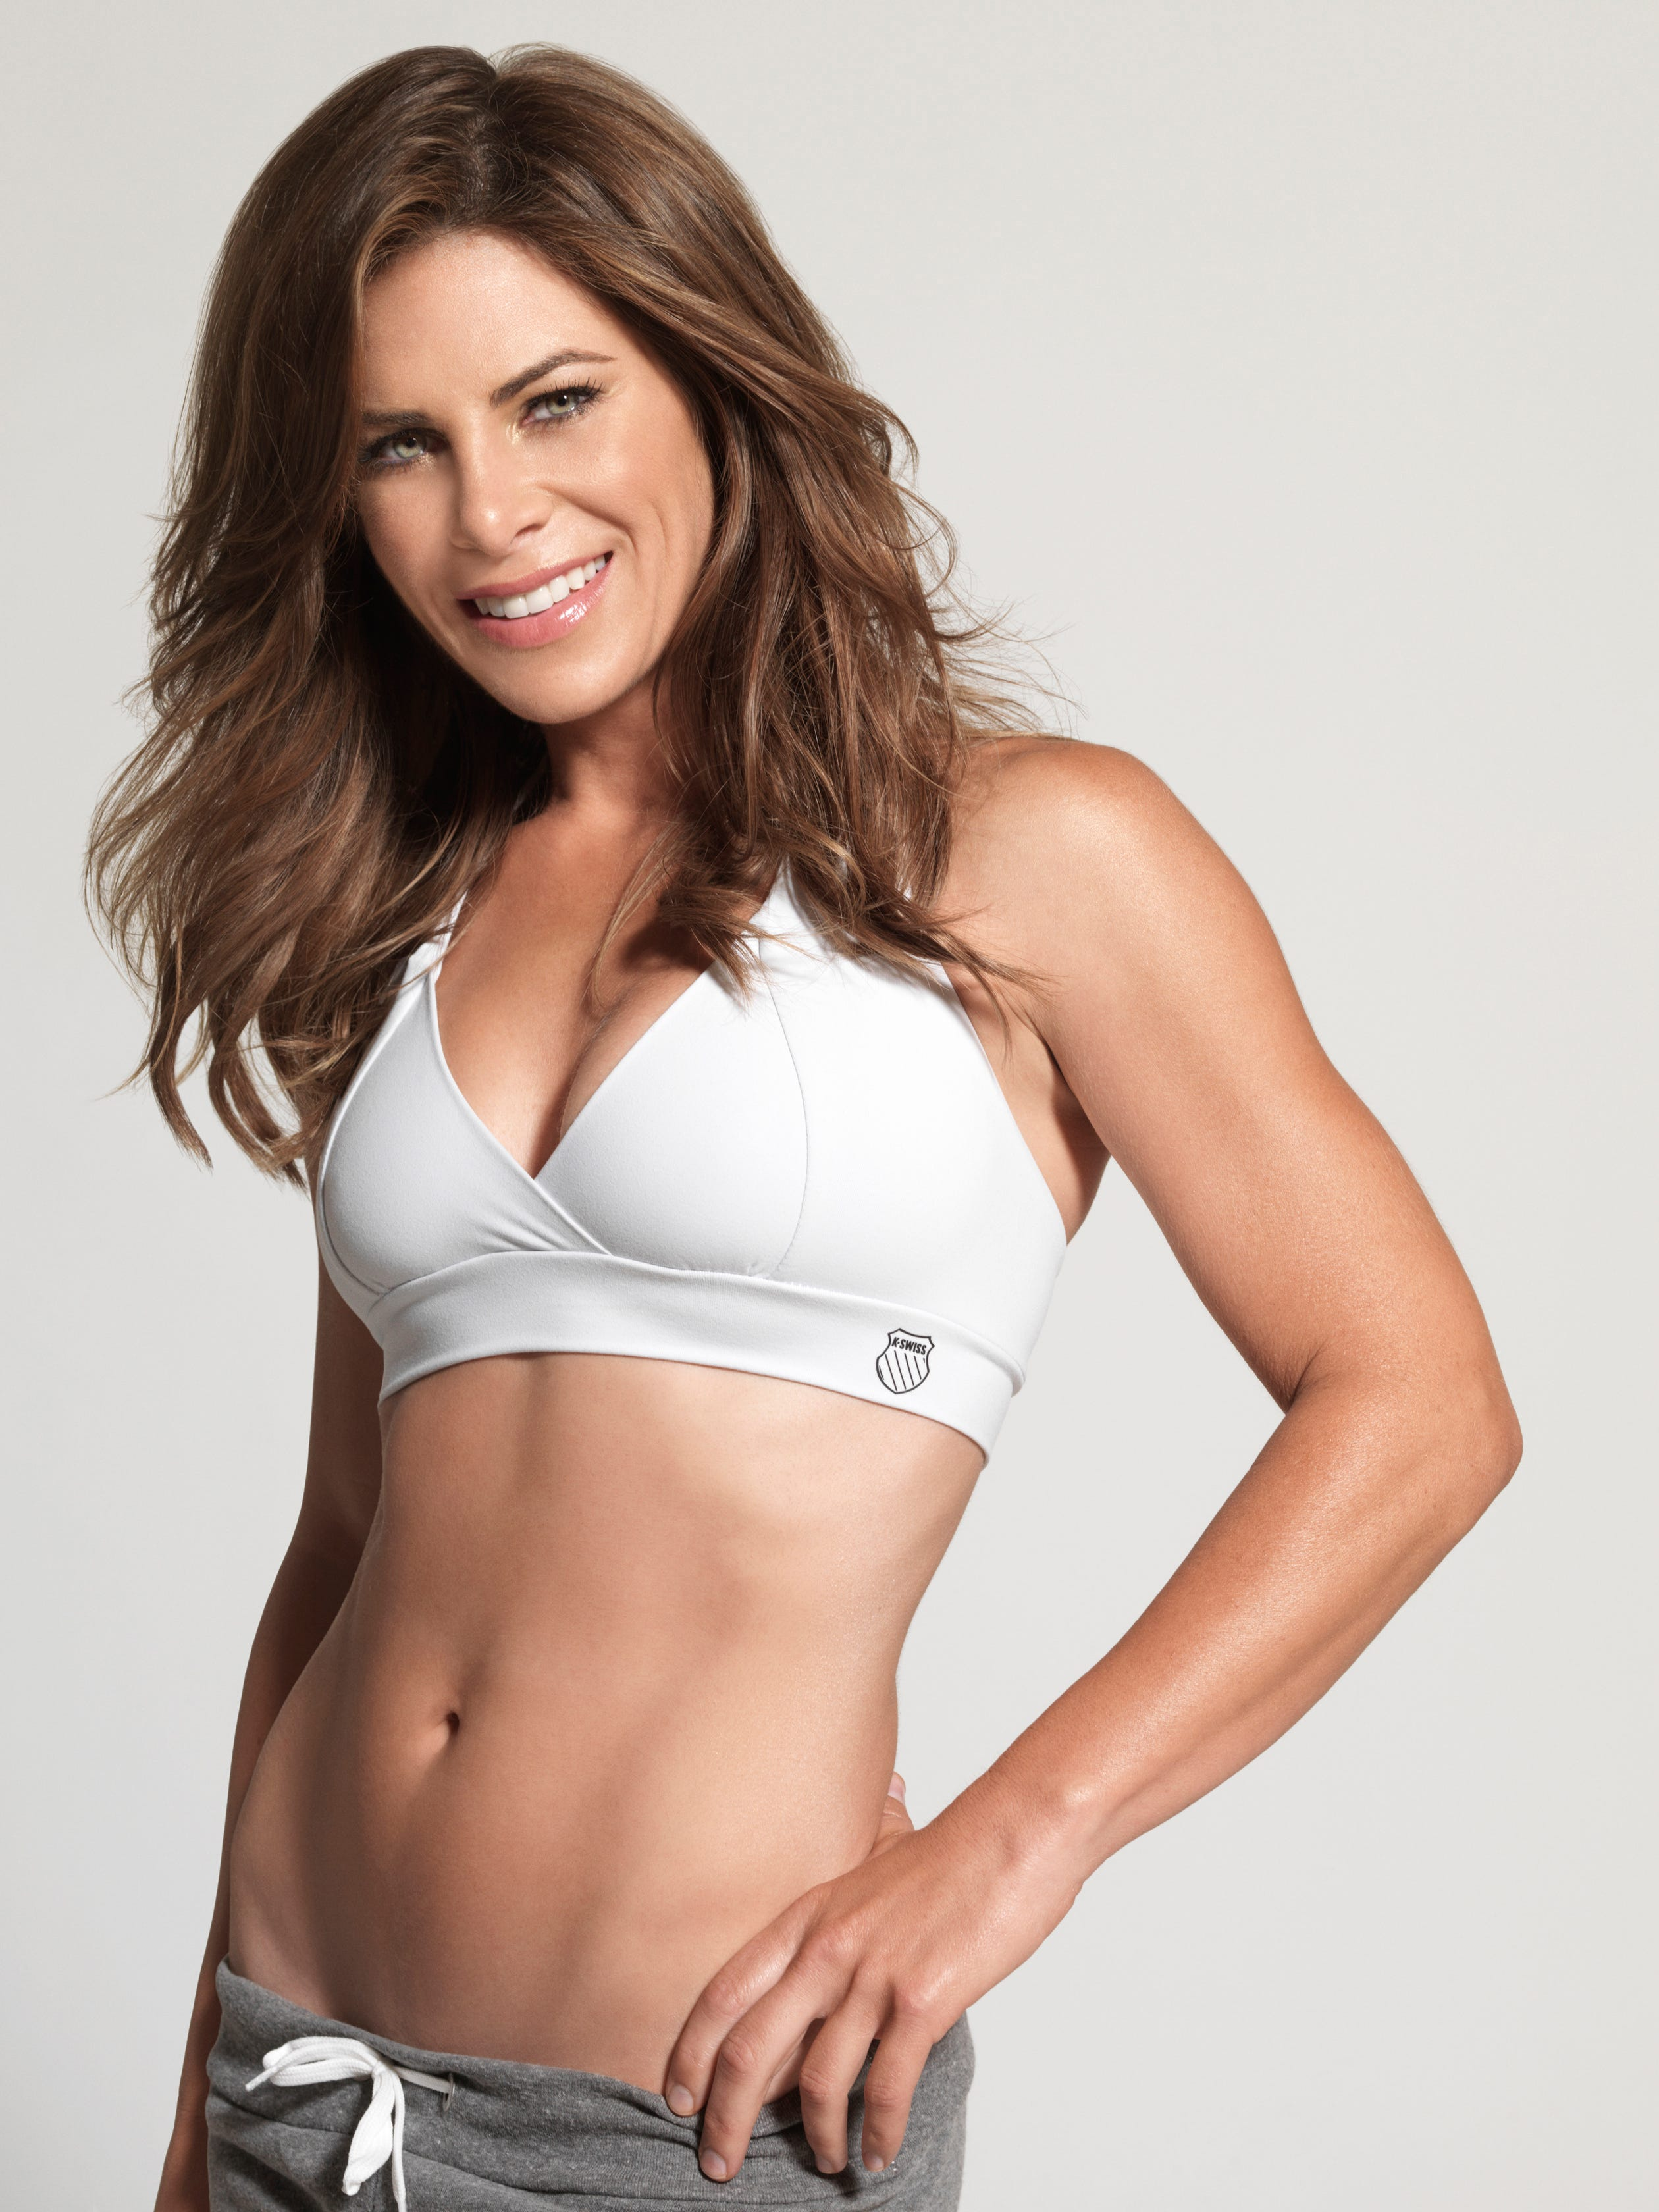 2019 Jillian Michaels nude (87 photo), Sexy, Cleavage, Twitter, cleavage 2018